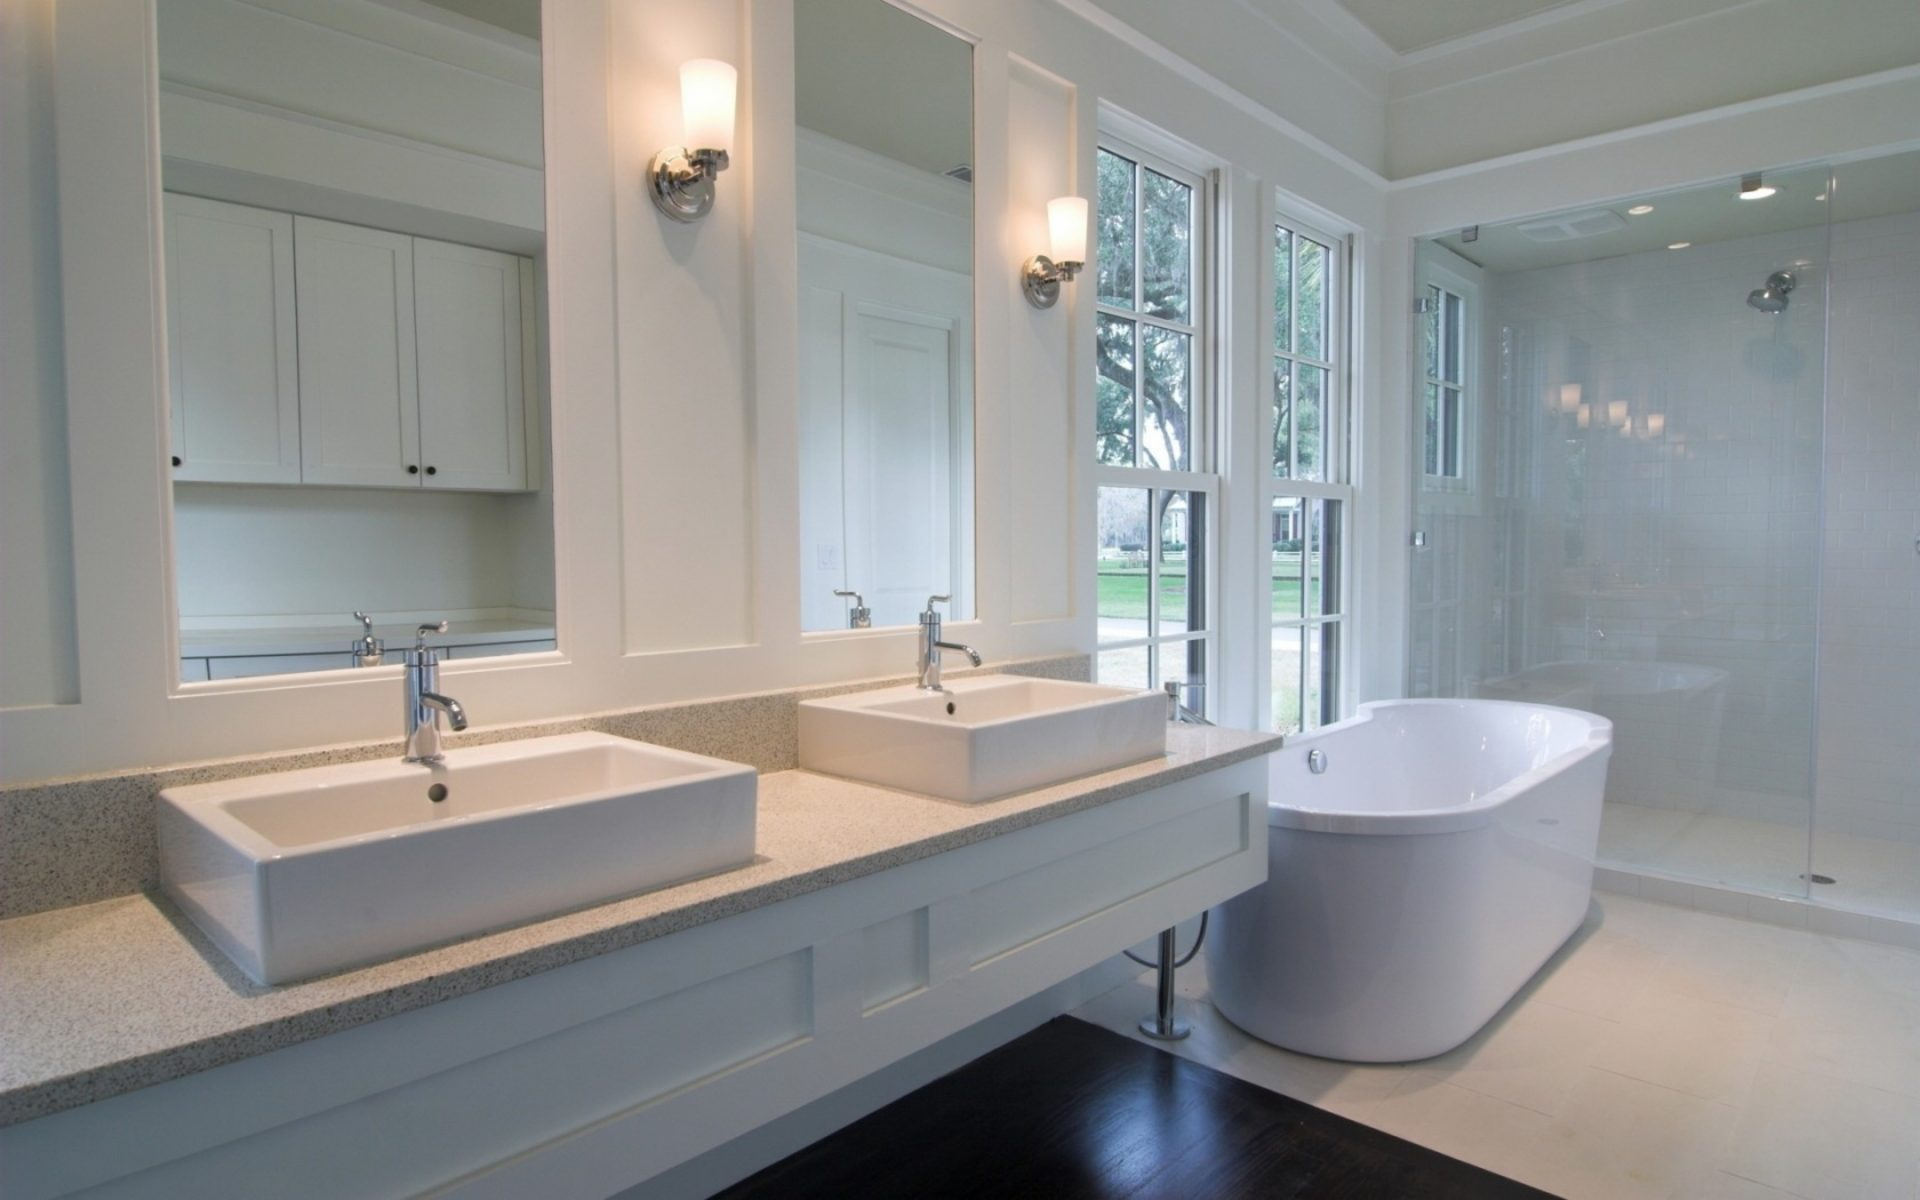 San Antonio bathroom remodeling trends bathroom cabinets countertops tile flooring renovation contractors